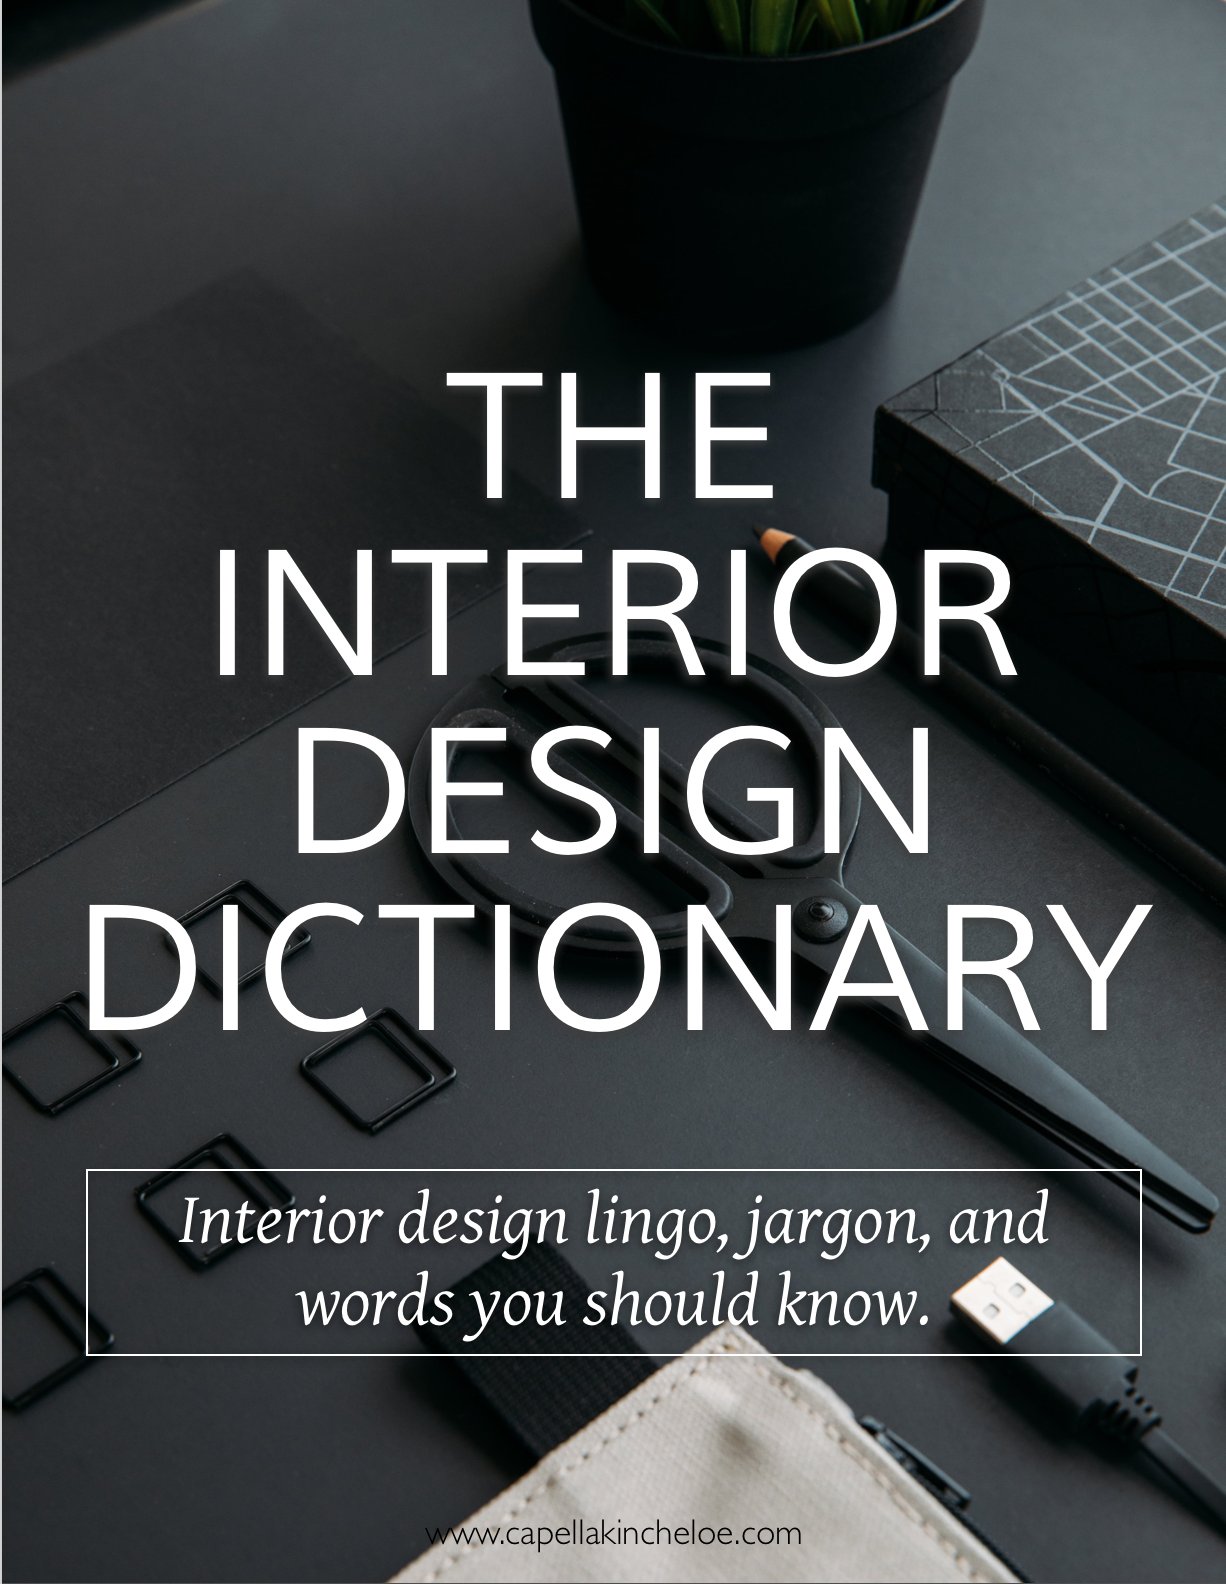 When I started in interior design there were words that I had no clue what they meant. They were interior design specific and I was clueless, but you don't have to be clueless like me with this dictionary! #interiordesignbusiness #interiordesigndictionary #designdictionary #cktradesecrets